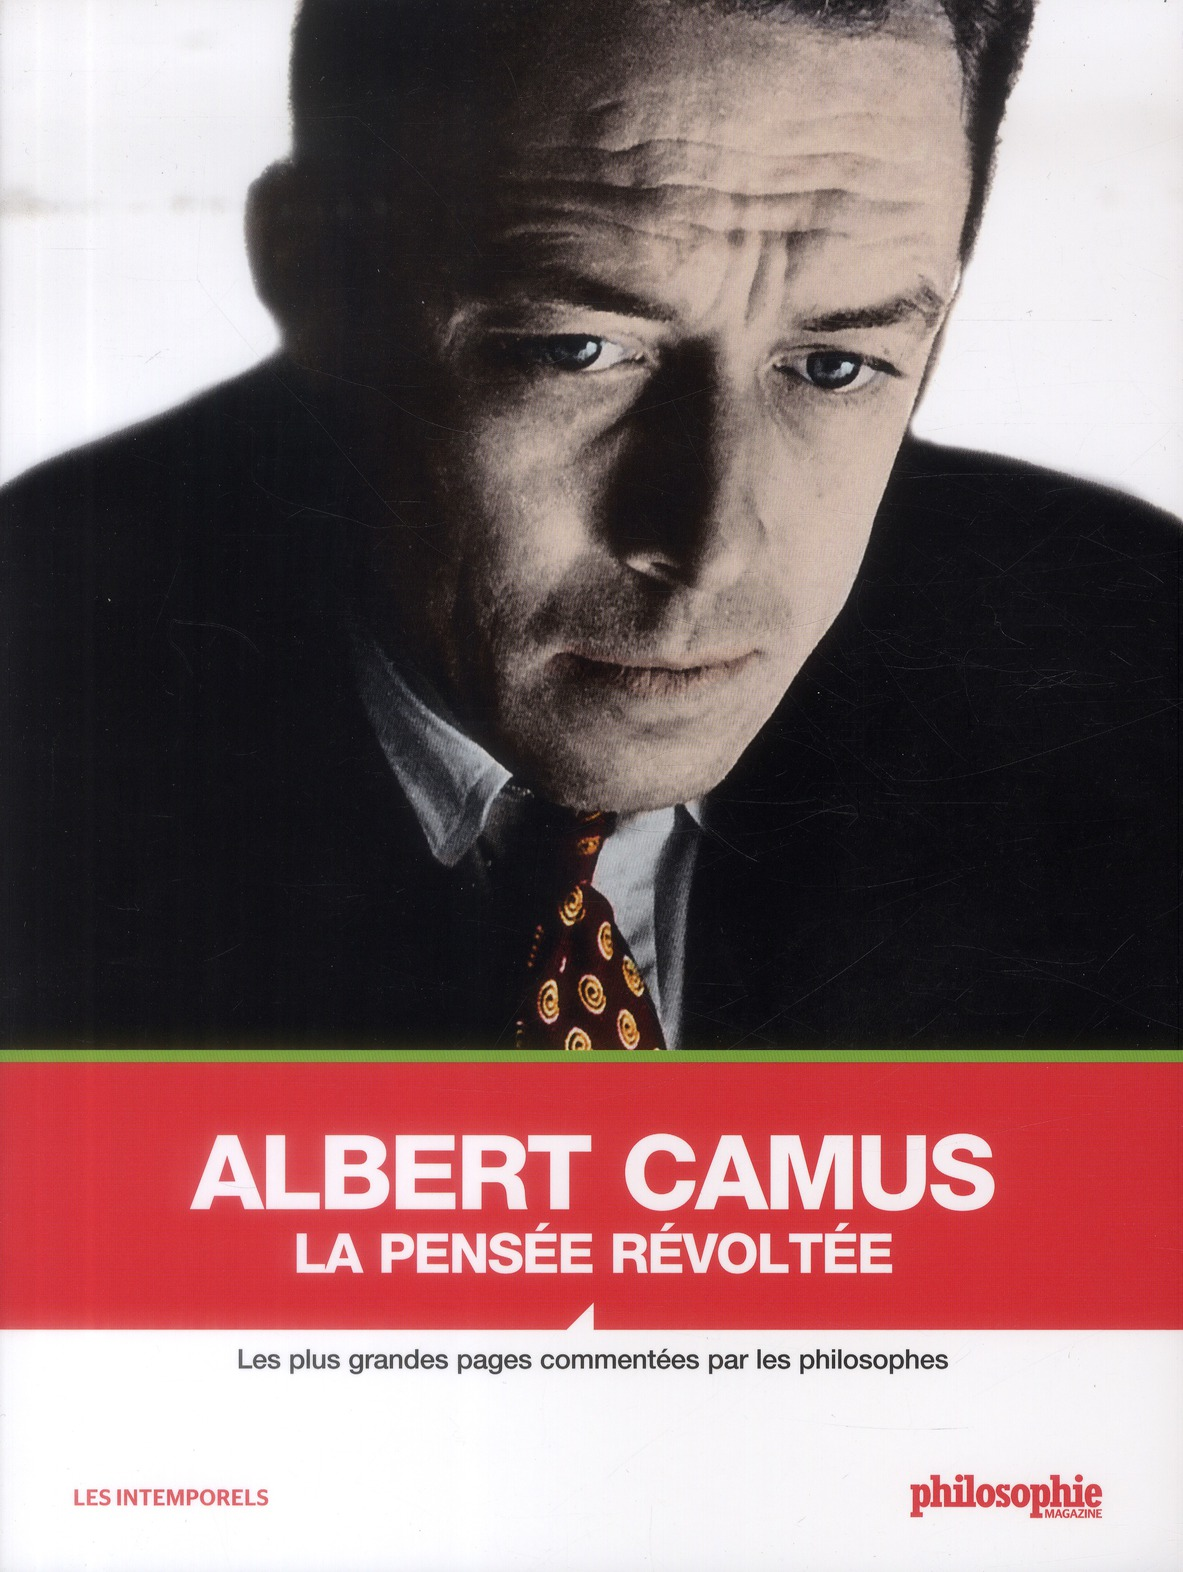 ALBERT CAMUS, LA PENSEE REVOLTEE. LES PLUS GRANDES PAGES COMMENTEES PAR LES PHIL